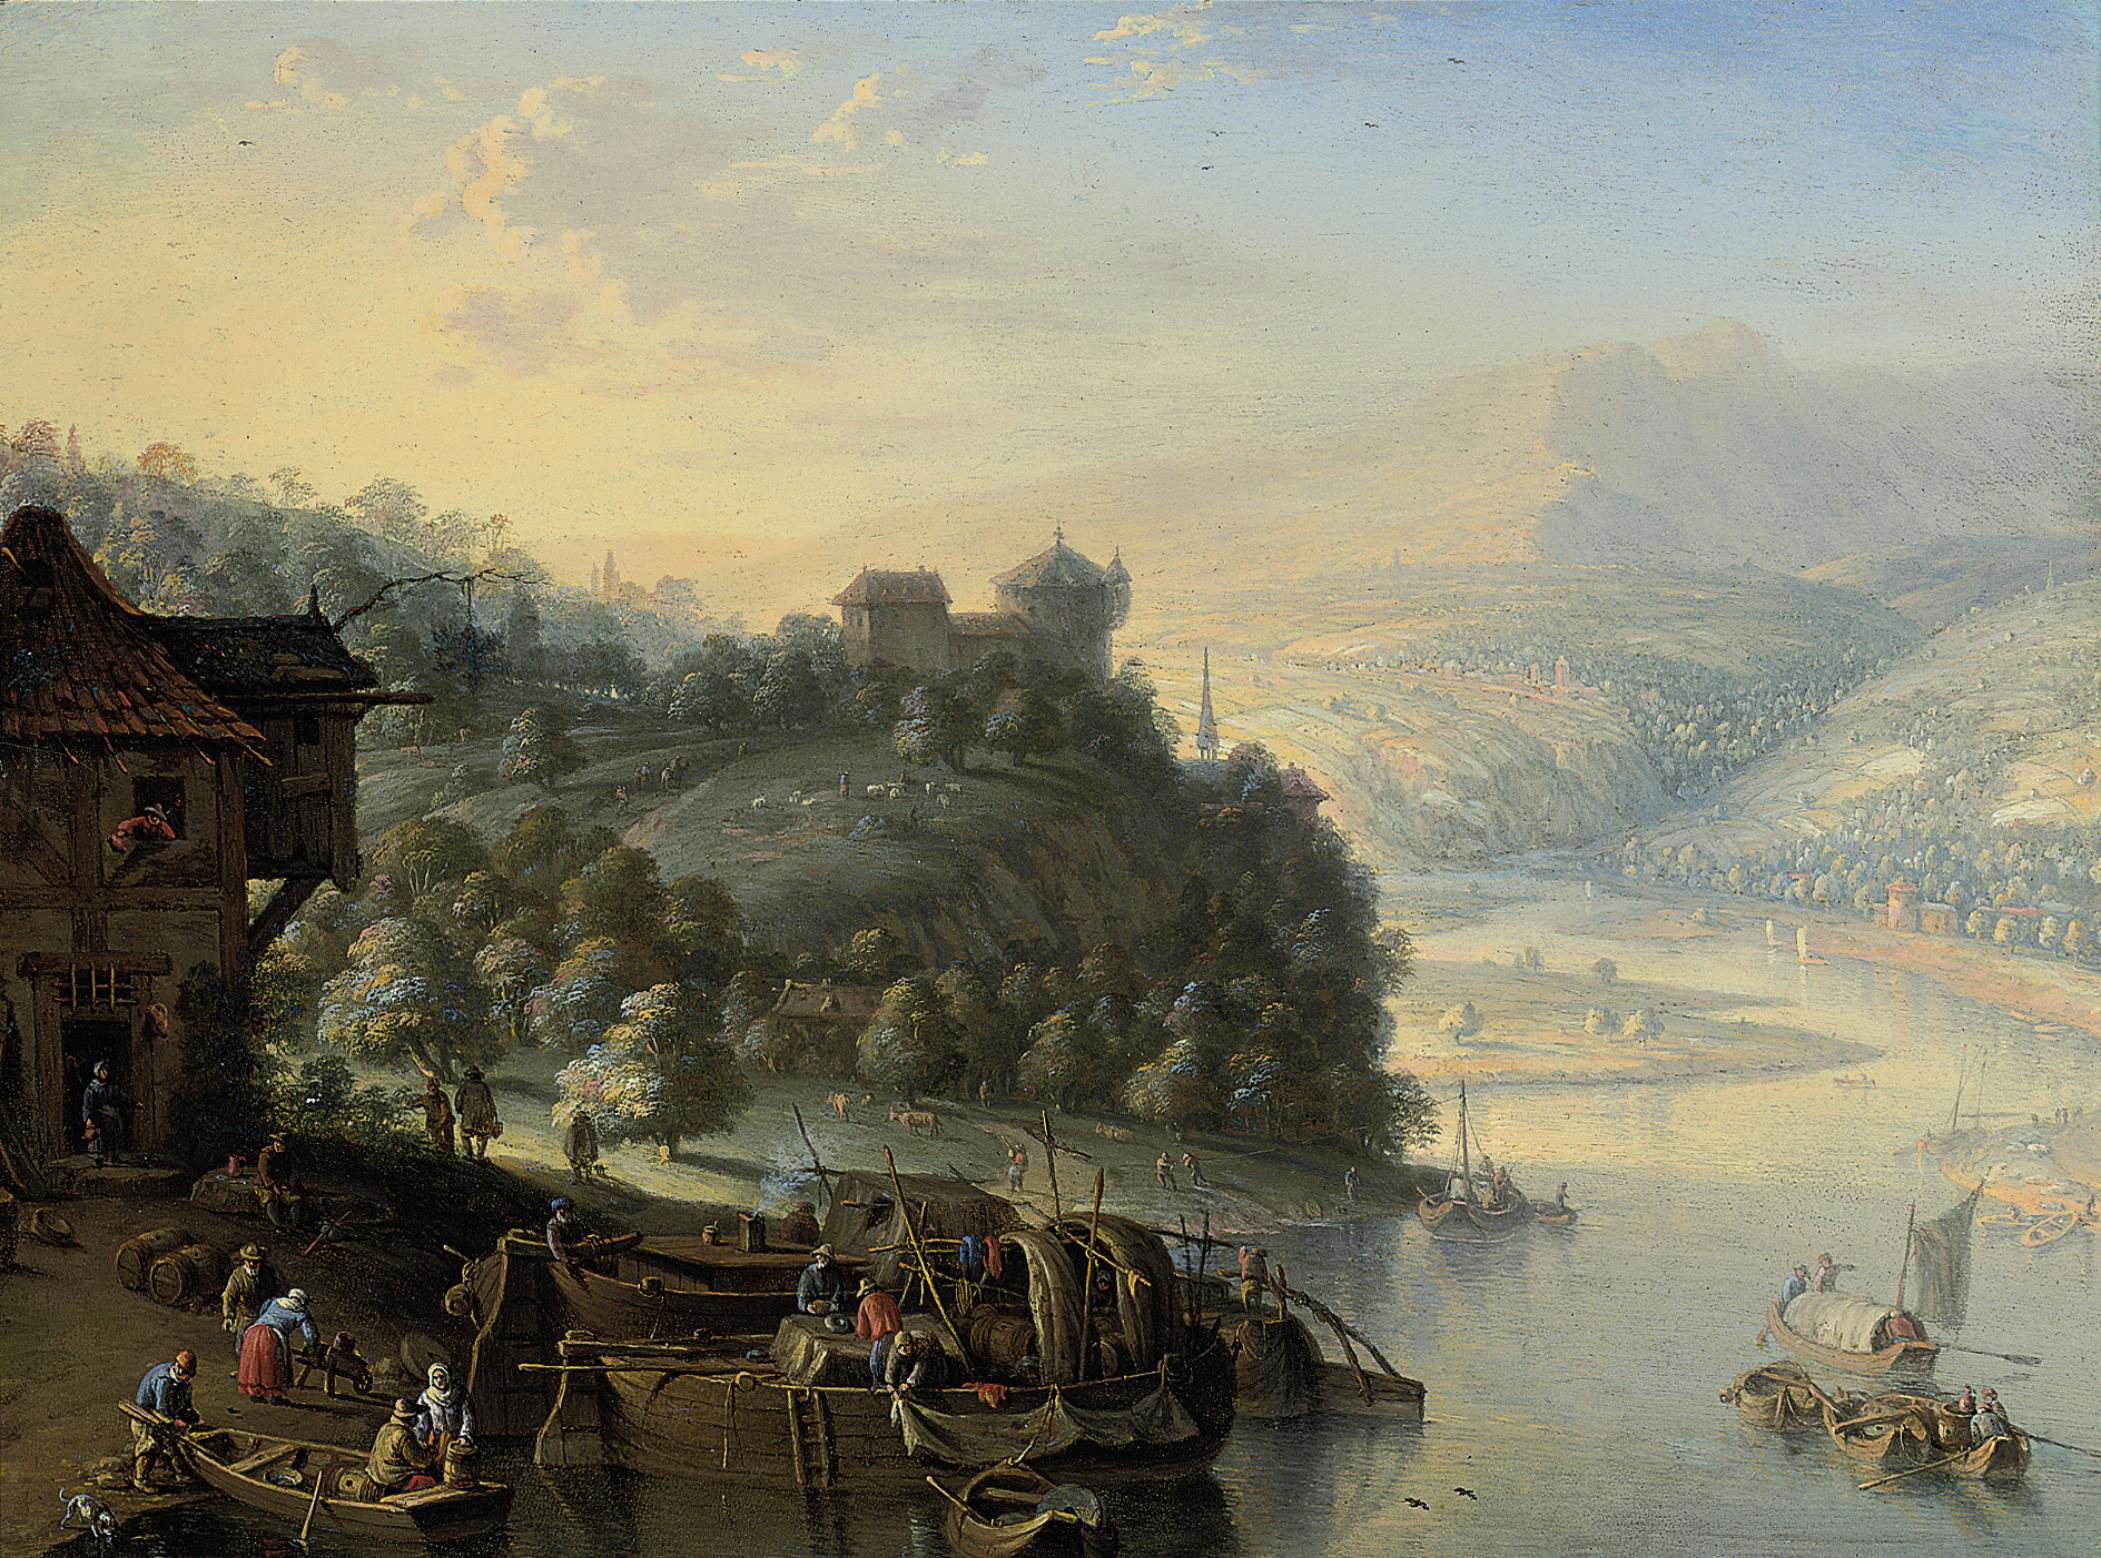 A Rhenish landscape with boats on a riverbank